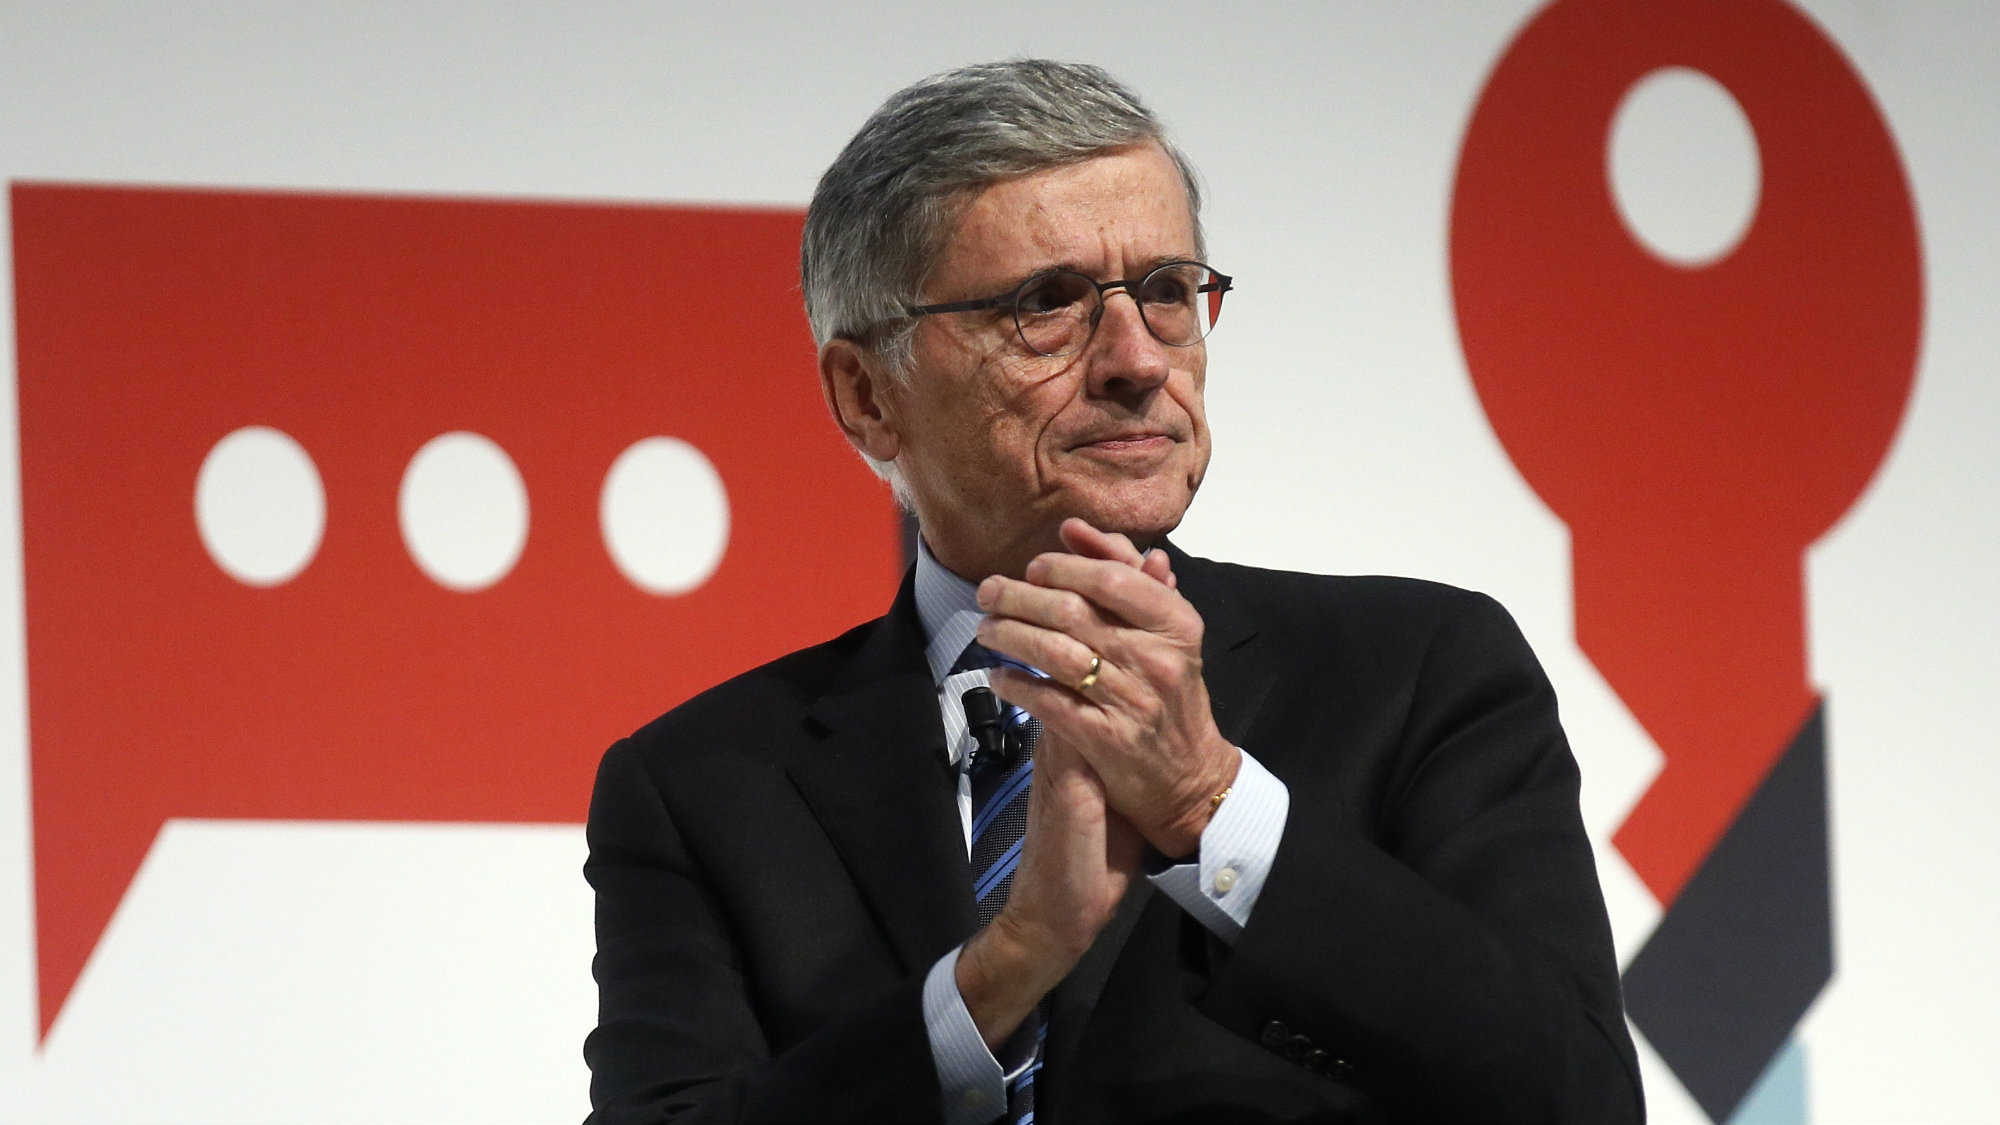 Tom Wheeler, the head of the U.S. Federal Communications Commission, gestures as he delivers a keynote speech during the Mobile World Congress in Barcelona March 3, 2015. Ninety thousand executives, marketers and reporters gather in Barcelona this week for the telecom operators Mobile World Congress, the largest annual trade show for the global wireless industry. REUTERS/Albert Gea (SPAIN - Tags: BUSINESS SCIENCE TECHNOLOGY BUSINESS TELECOMS)